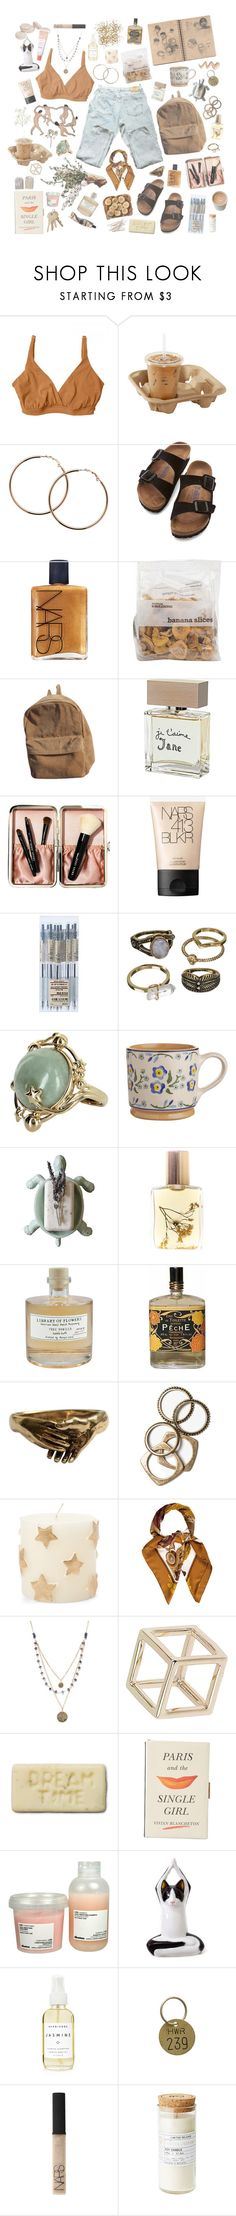 """""""you've got the love"""" by blusargnt ❤ liked on Polyvore featuring Bella Materna, Melissa Odabash, Birkenstock, NARS Cosmetics, Bella Freud, Bobbi Brown Cosmetics, Mudd, Vintage, Dot & Bo and Flidais Parfumerie"""